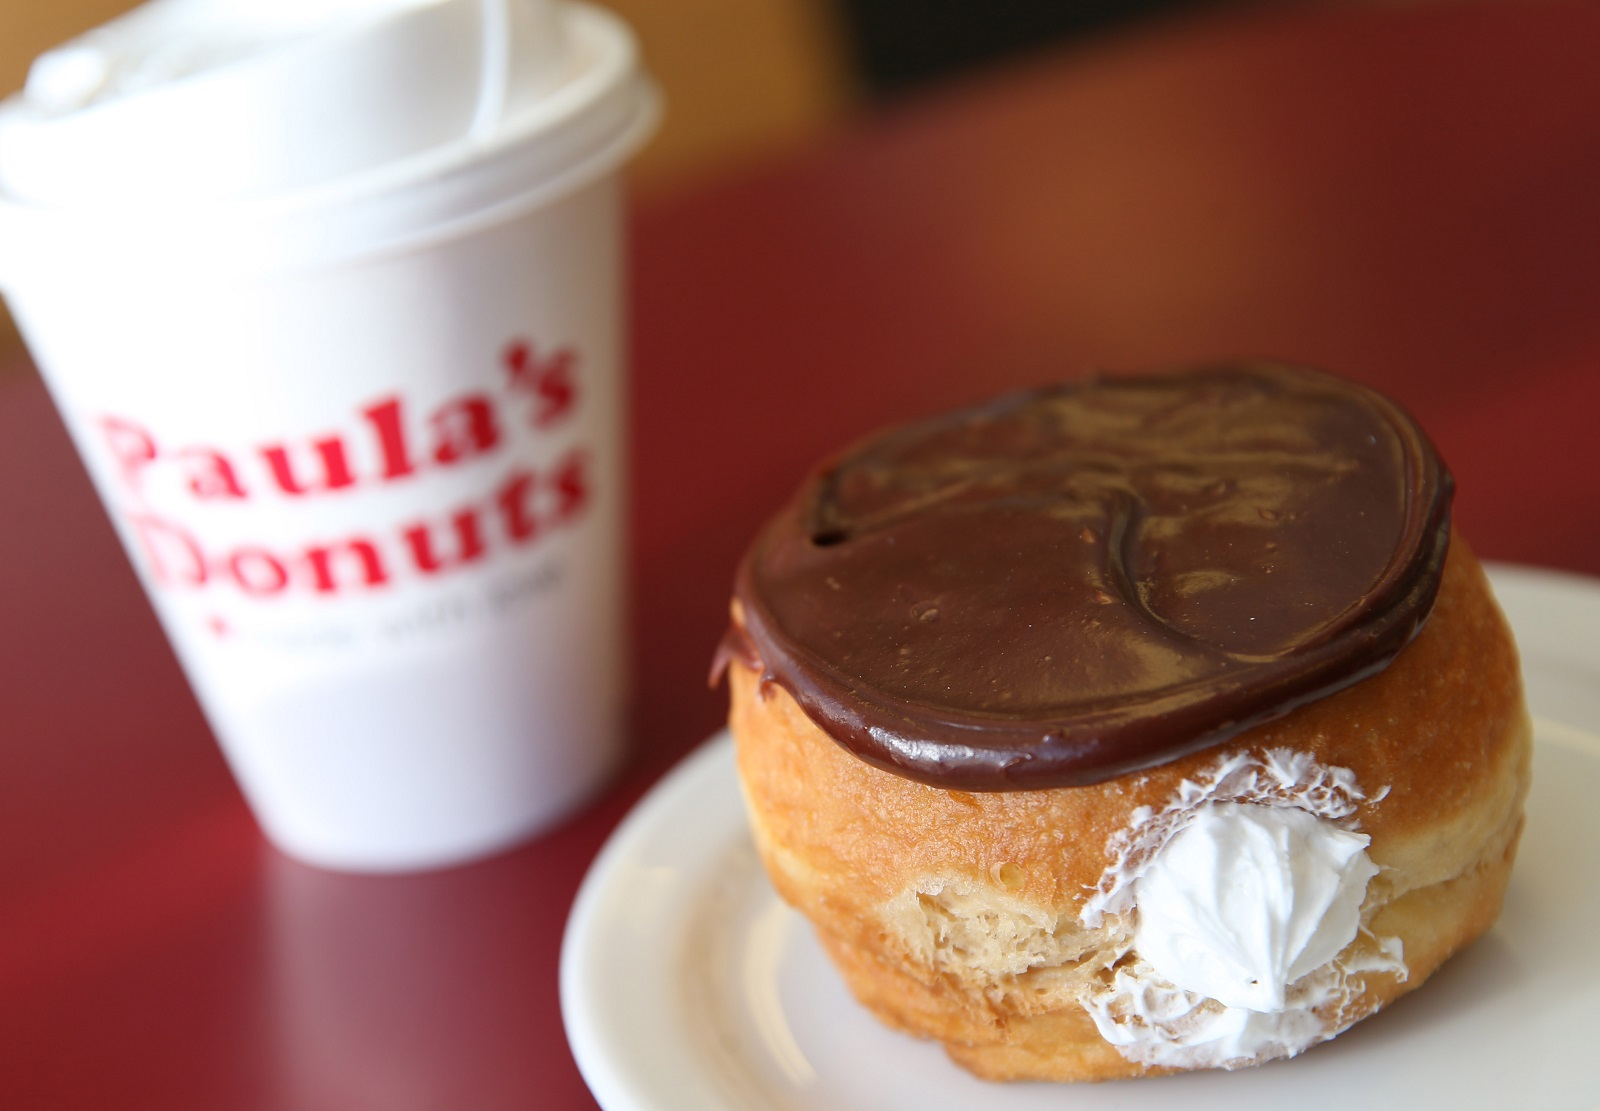 Paula's Donuts is coming to Larkinville. (Sharon Cantillon/Buffalo News)